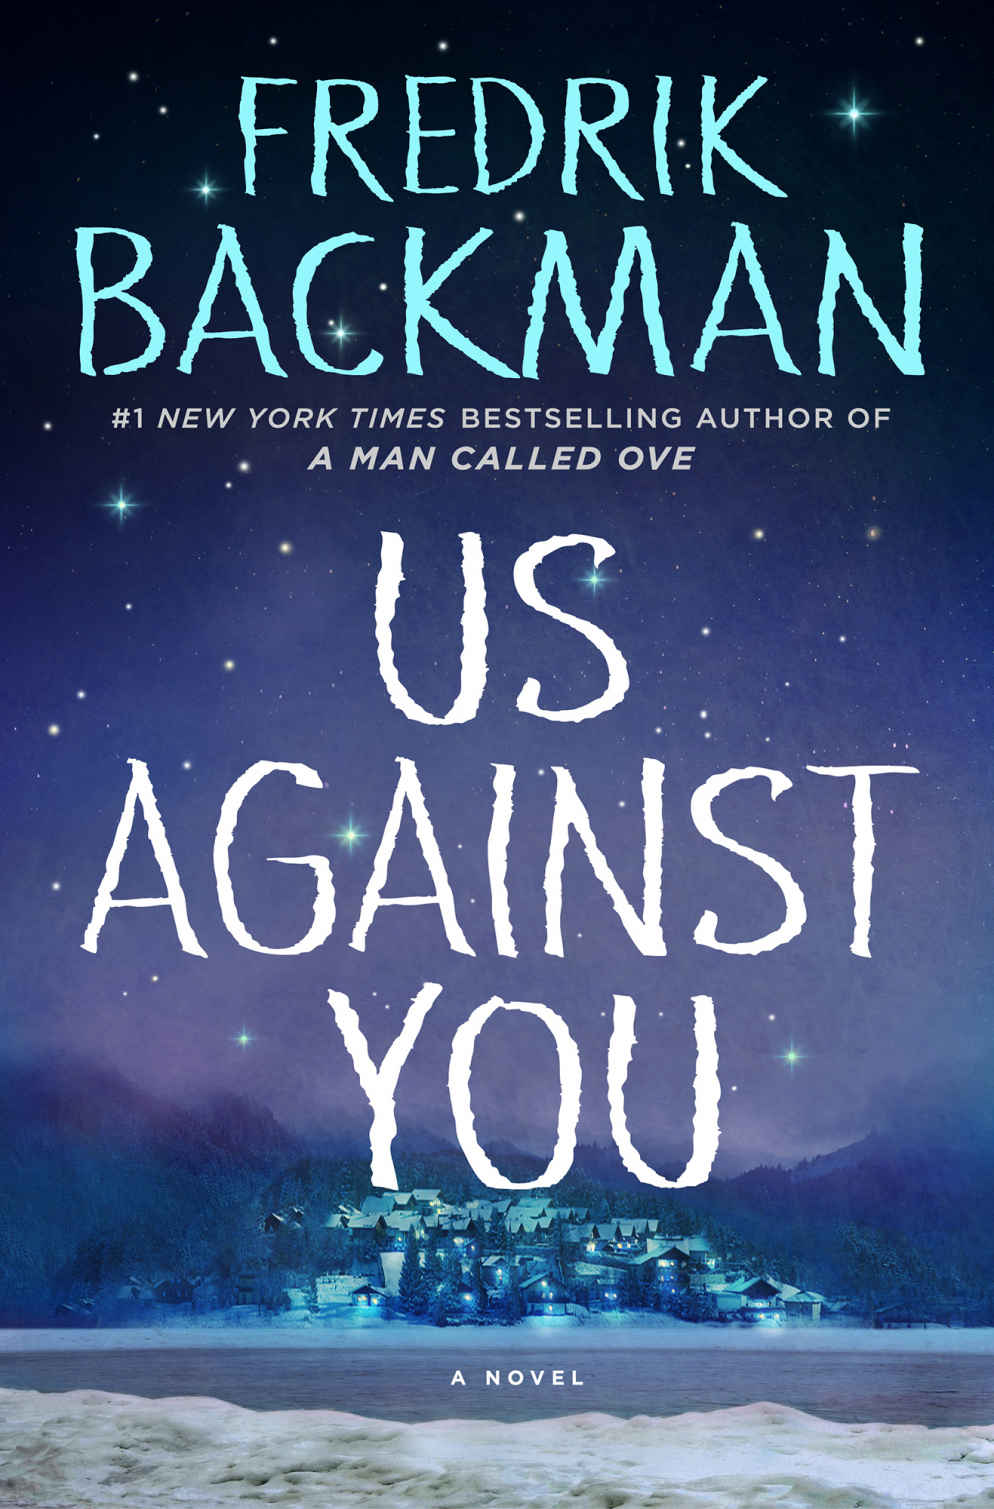 Us Against You: A Novel - Fredrik Backman [kindle] [mobi]